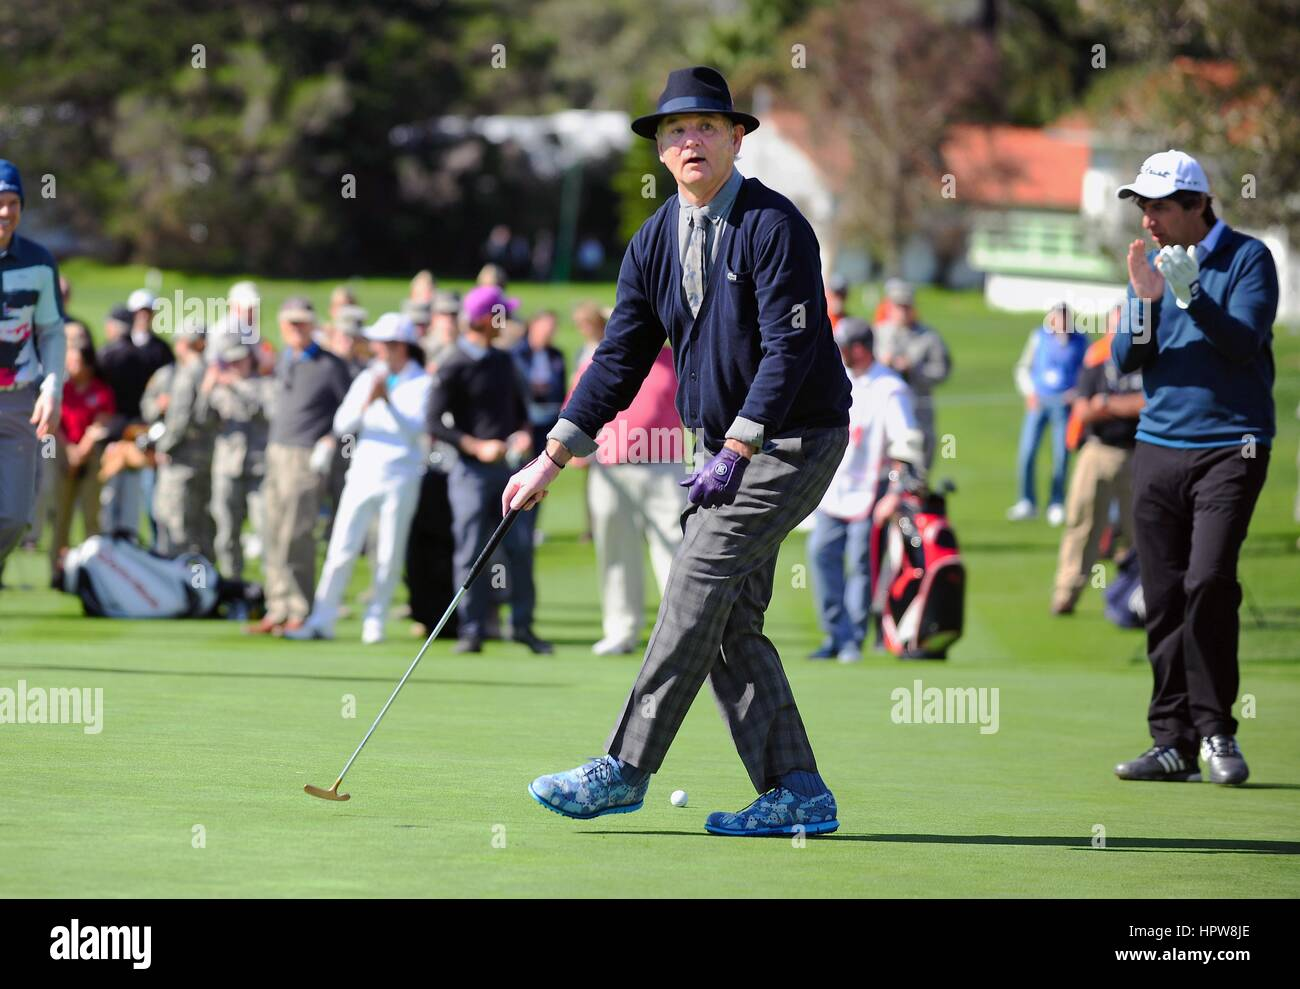 Actor and comedian Bill Murray wearing a matching navy blue sweater and hat watches his putt during the AT&T - Stock Image